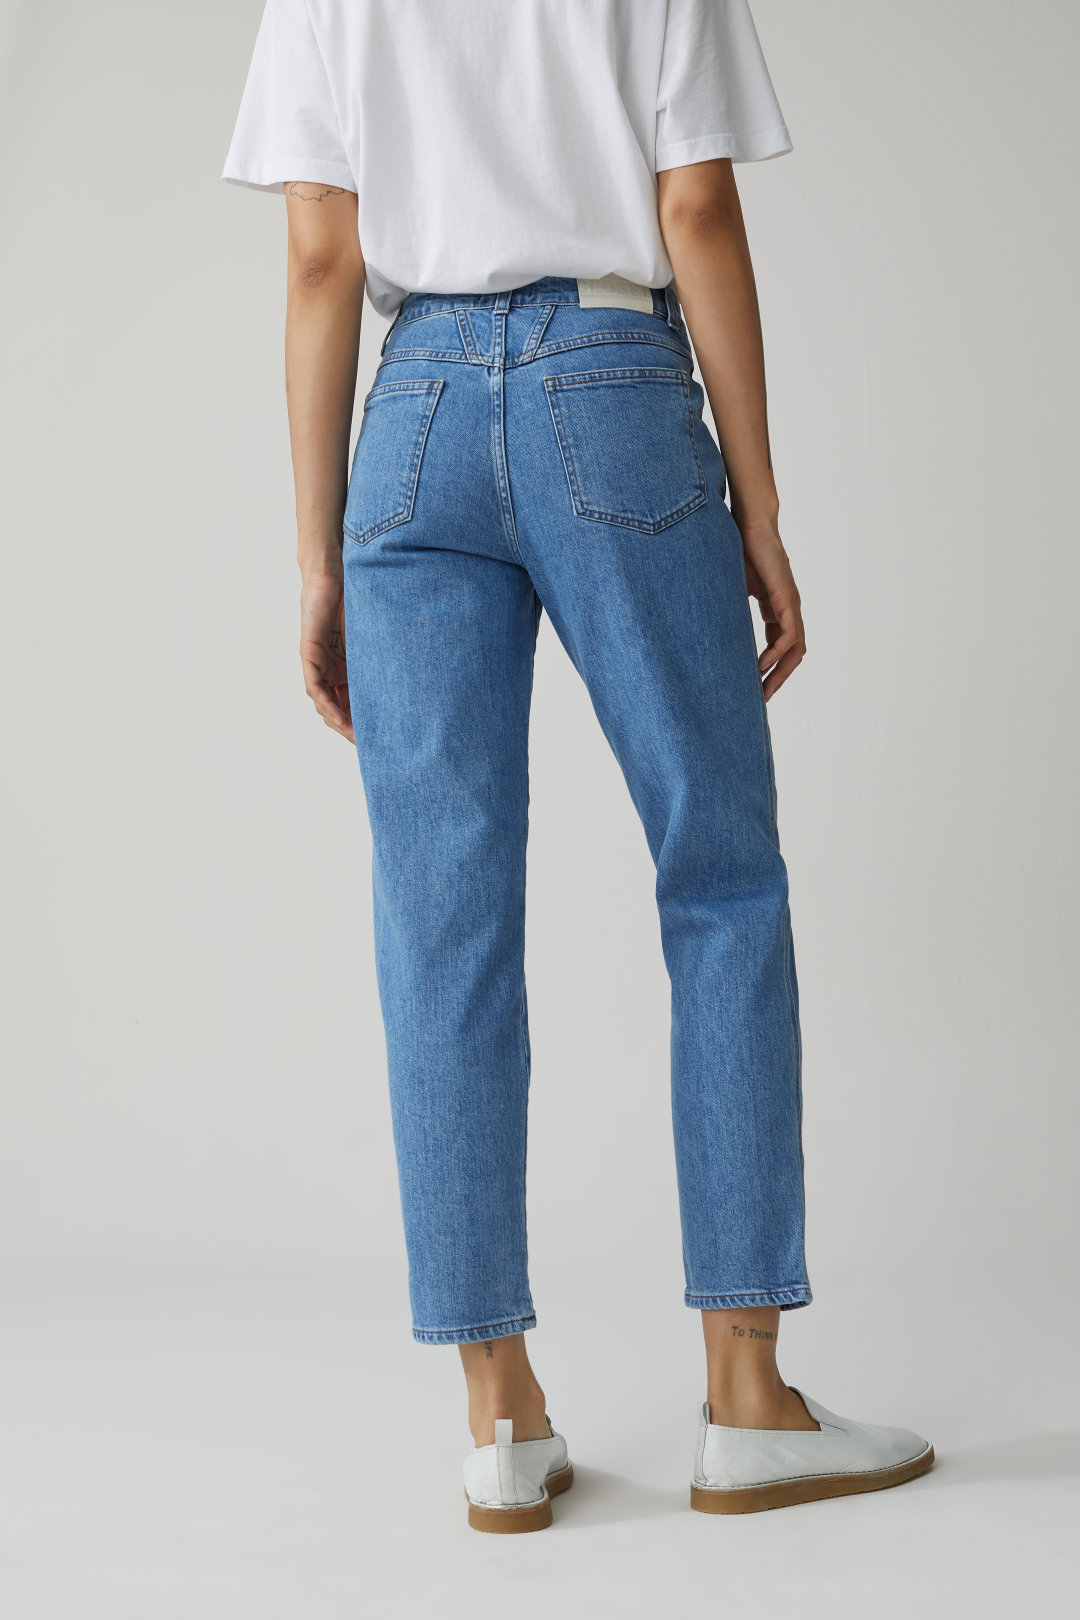 Pedal Pusher Blue Stretch Denim